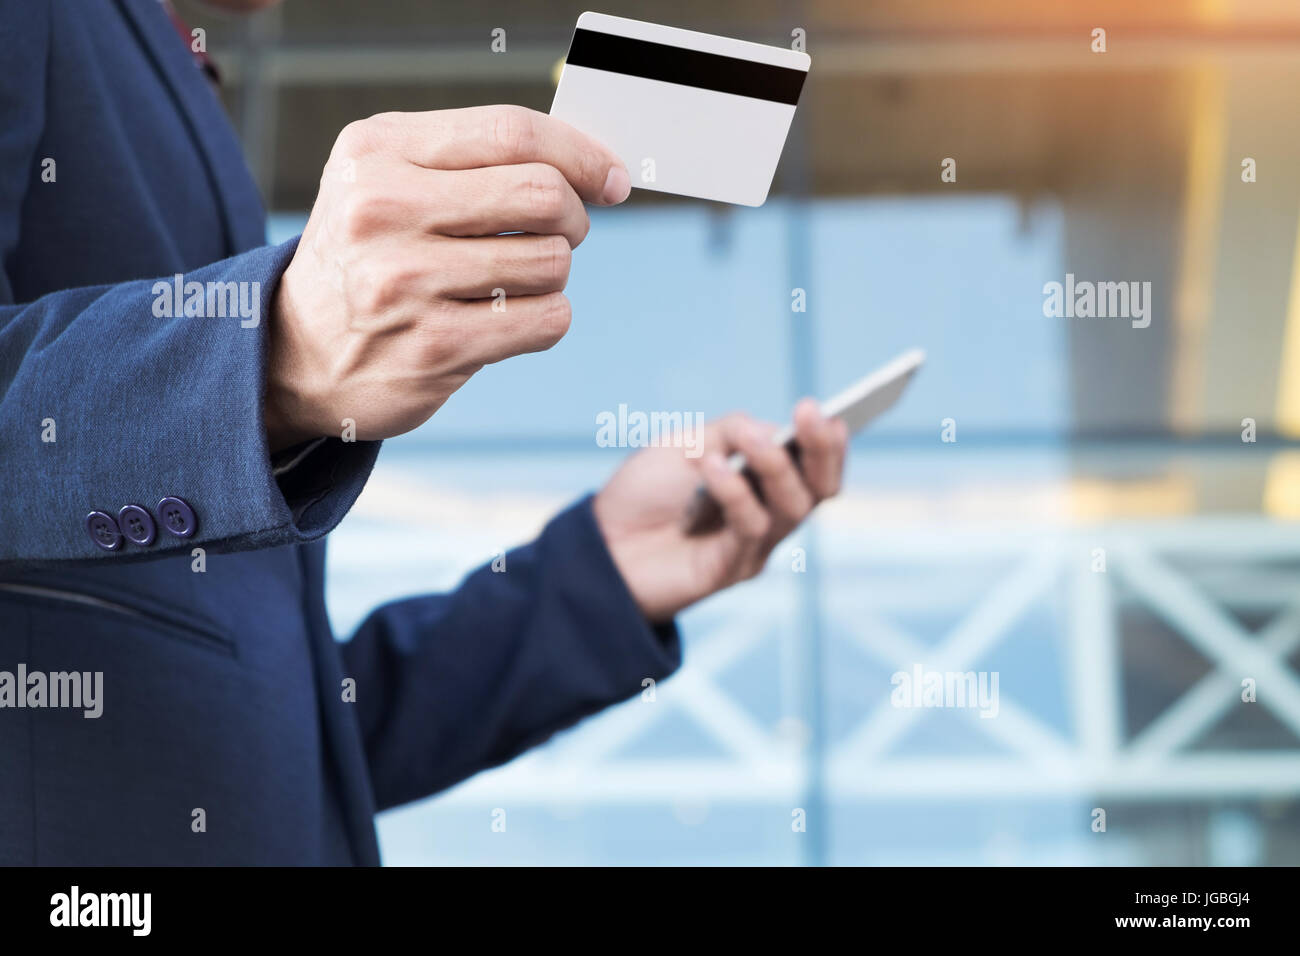 Handsome male owner of trading company dialing number from visit card on his modern smartphone searching skill specialist - Stock Image